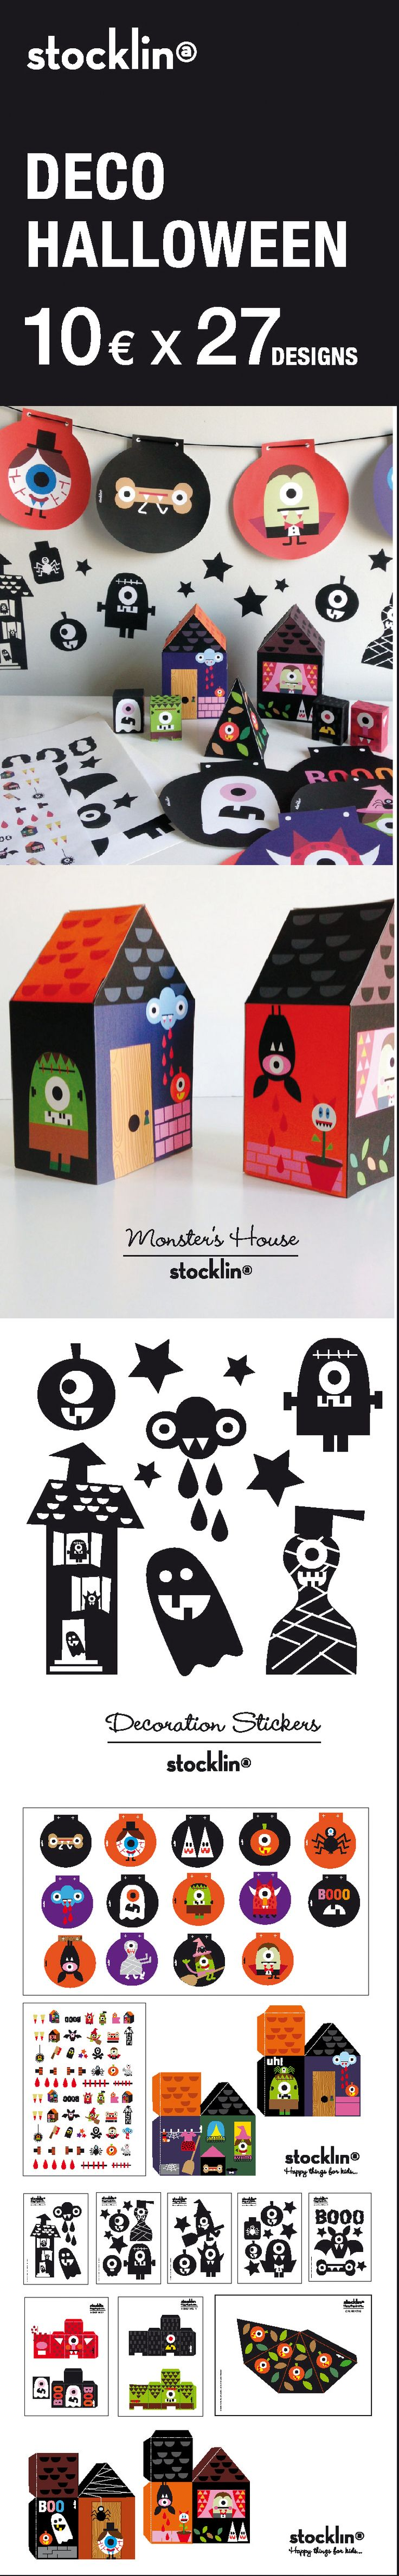 THE FUNNIEST HALLOWEEN DECORATION KIT Monster´s deco houses, Stickers, Tattoos, Garlands Do you want them? Buy them all here: http://stocklina.bigcartel.com/product #Halloween #Illustration # Kids #Decoration #Lastminute